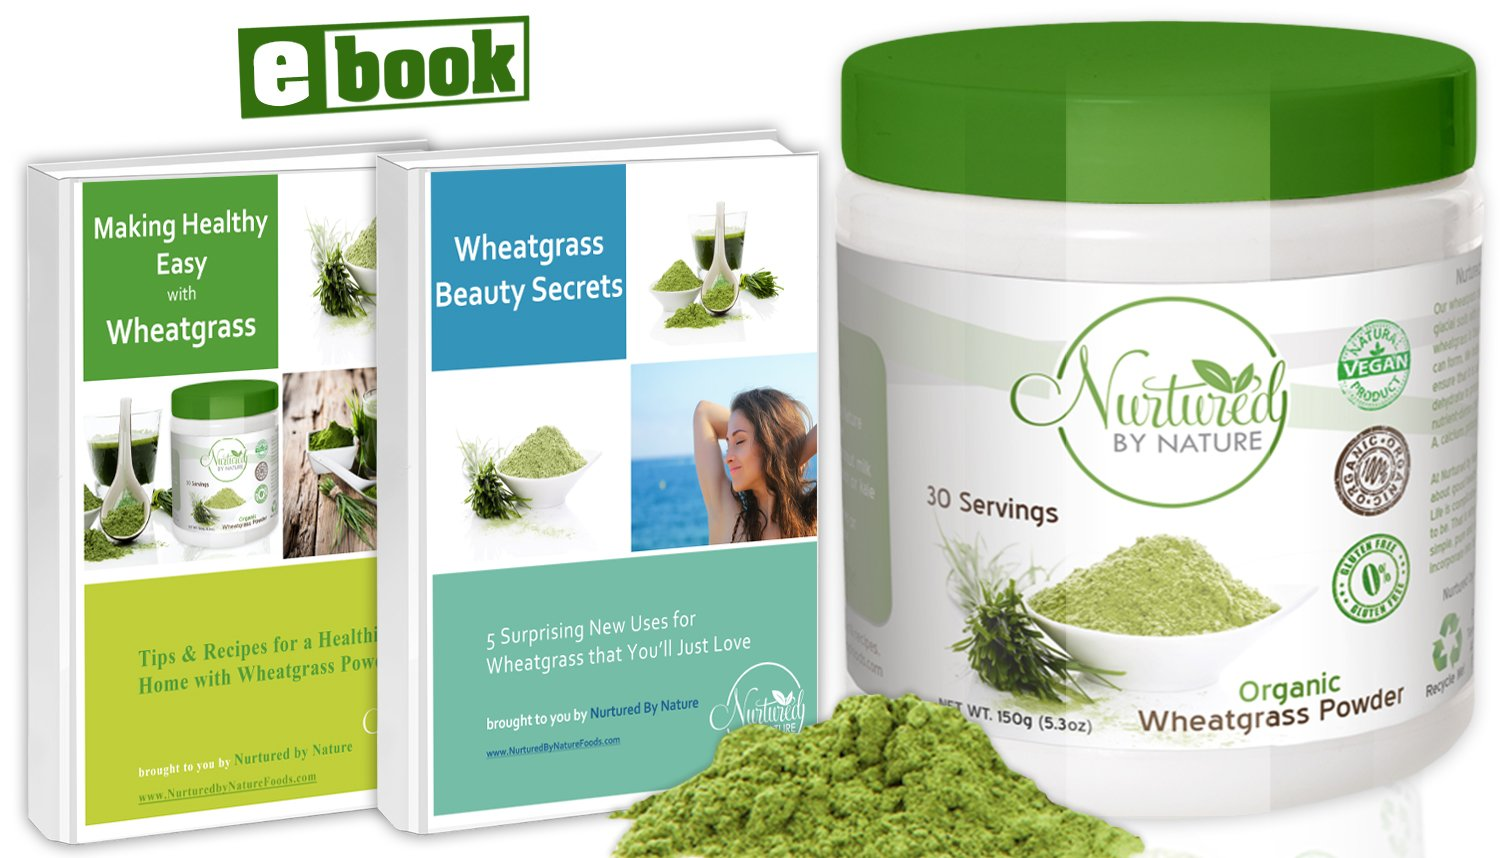 Nurtured by Nature Foods- Premium and 100% Organic Wheatgrass Powder